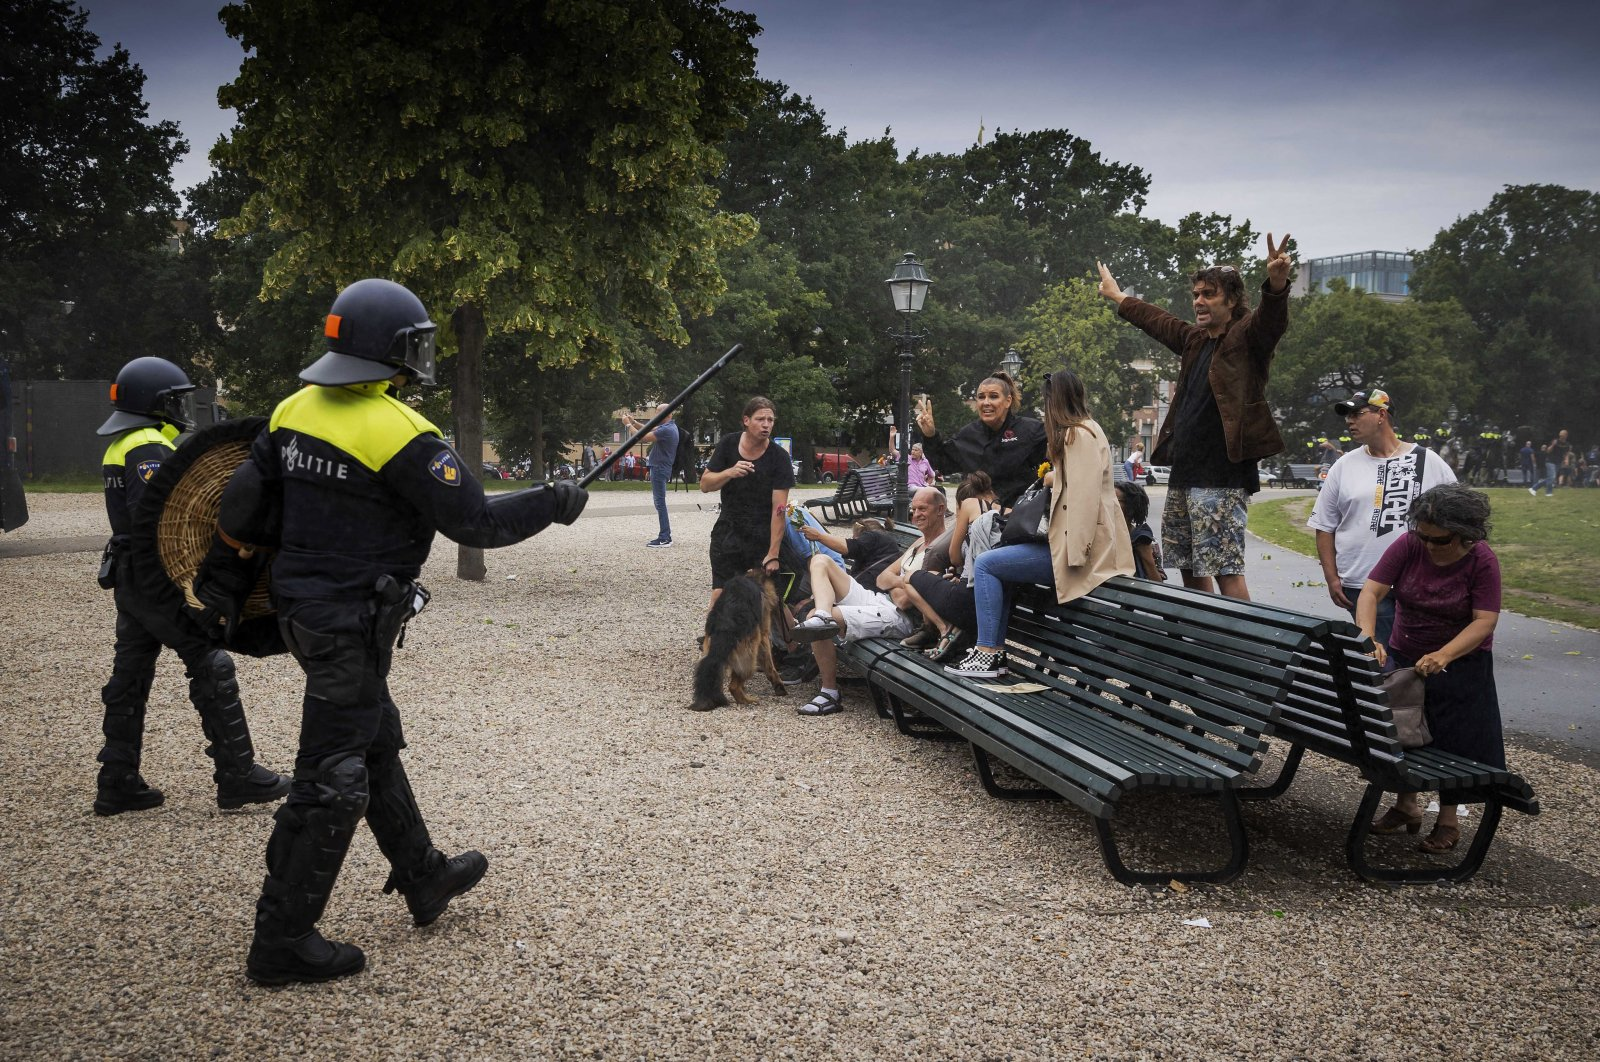 Police face protesters in the center of The Hague, Netherlands, 21 June 2020. (EPA Photo)